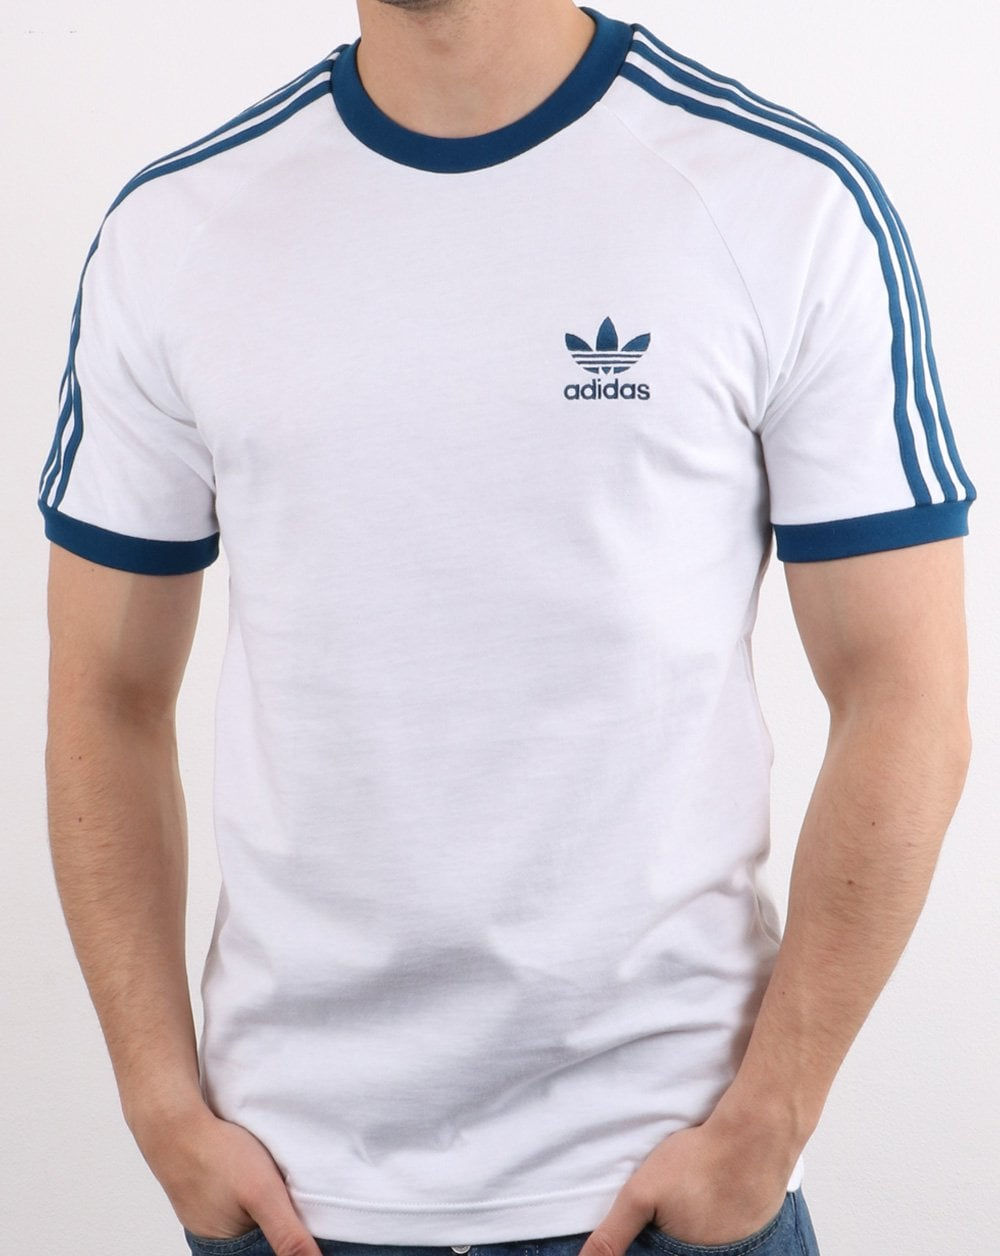 Adidas Originals Retro 3 Stripes T Shirt White/legend Marine